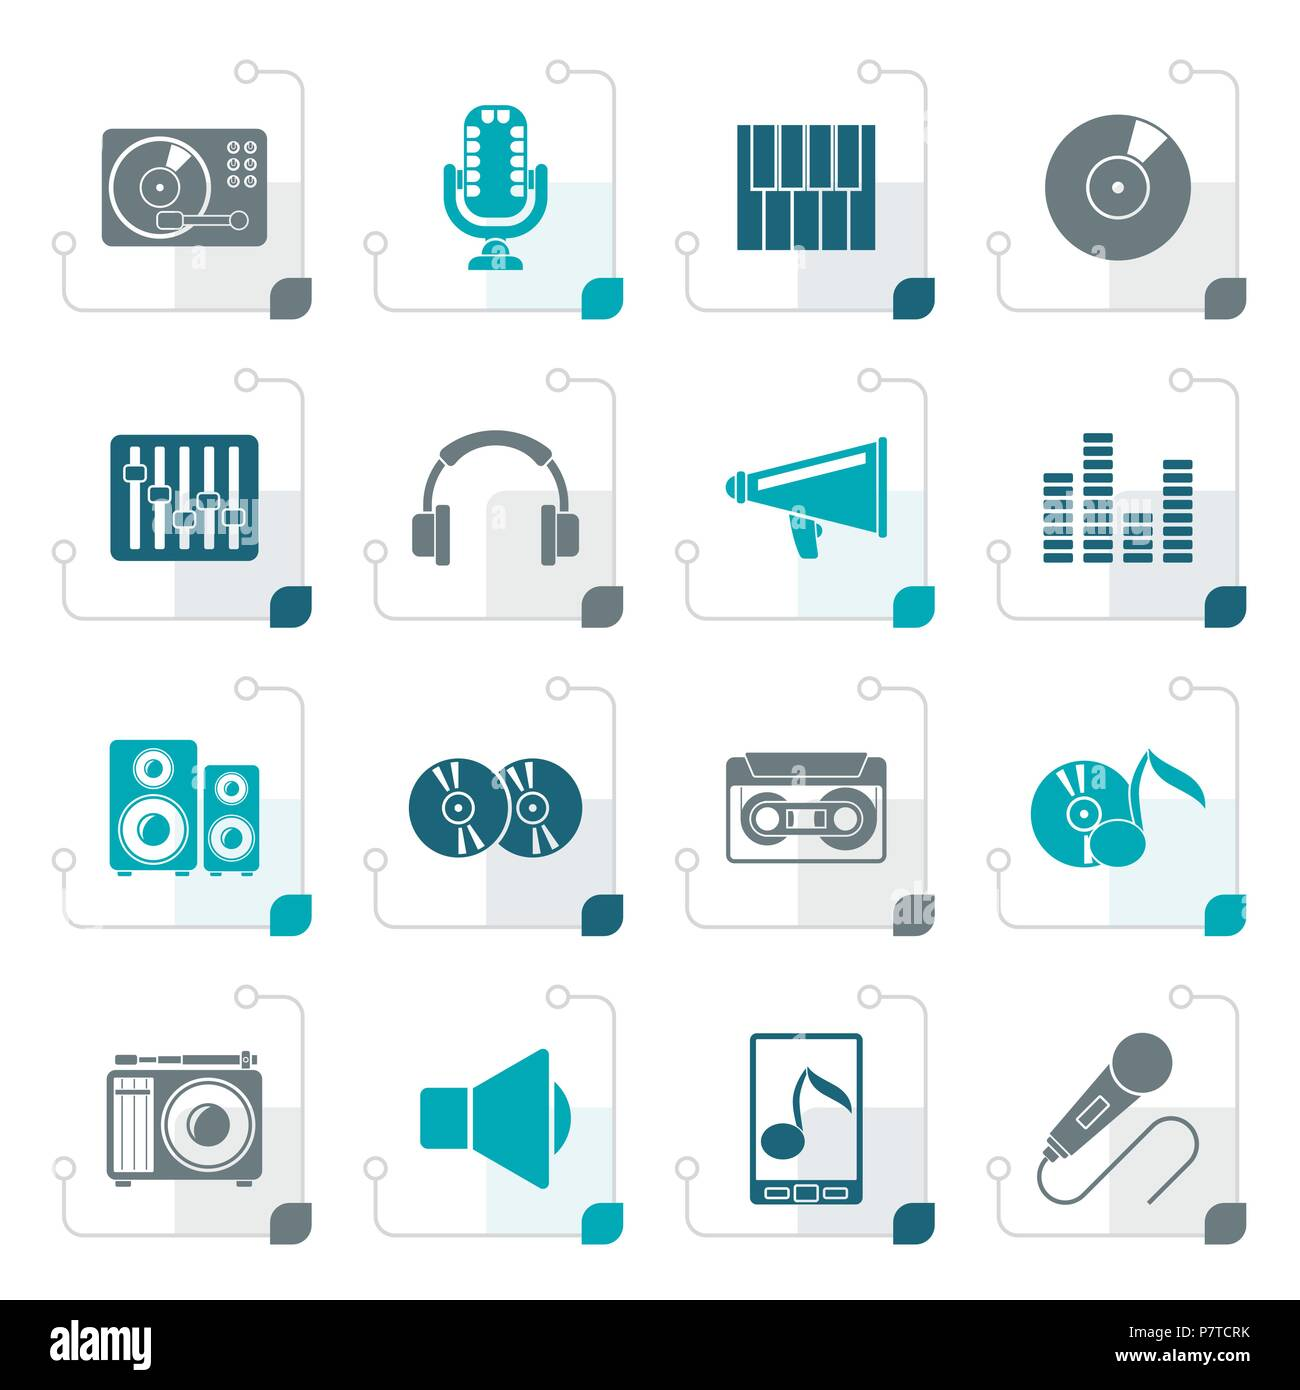 Stylized Music and audio equipment icons - vector icon set - Stock Image